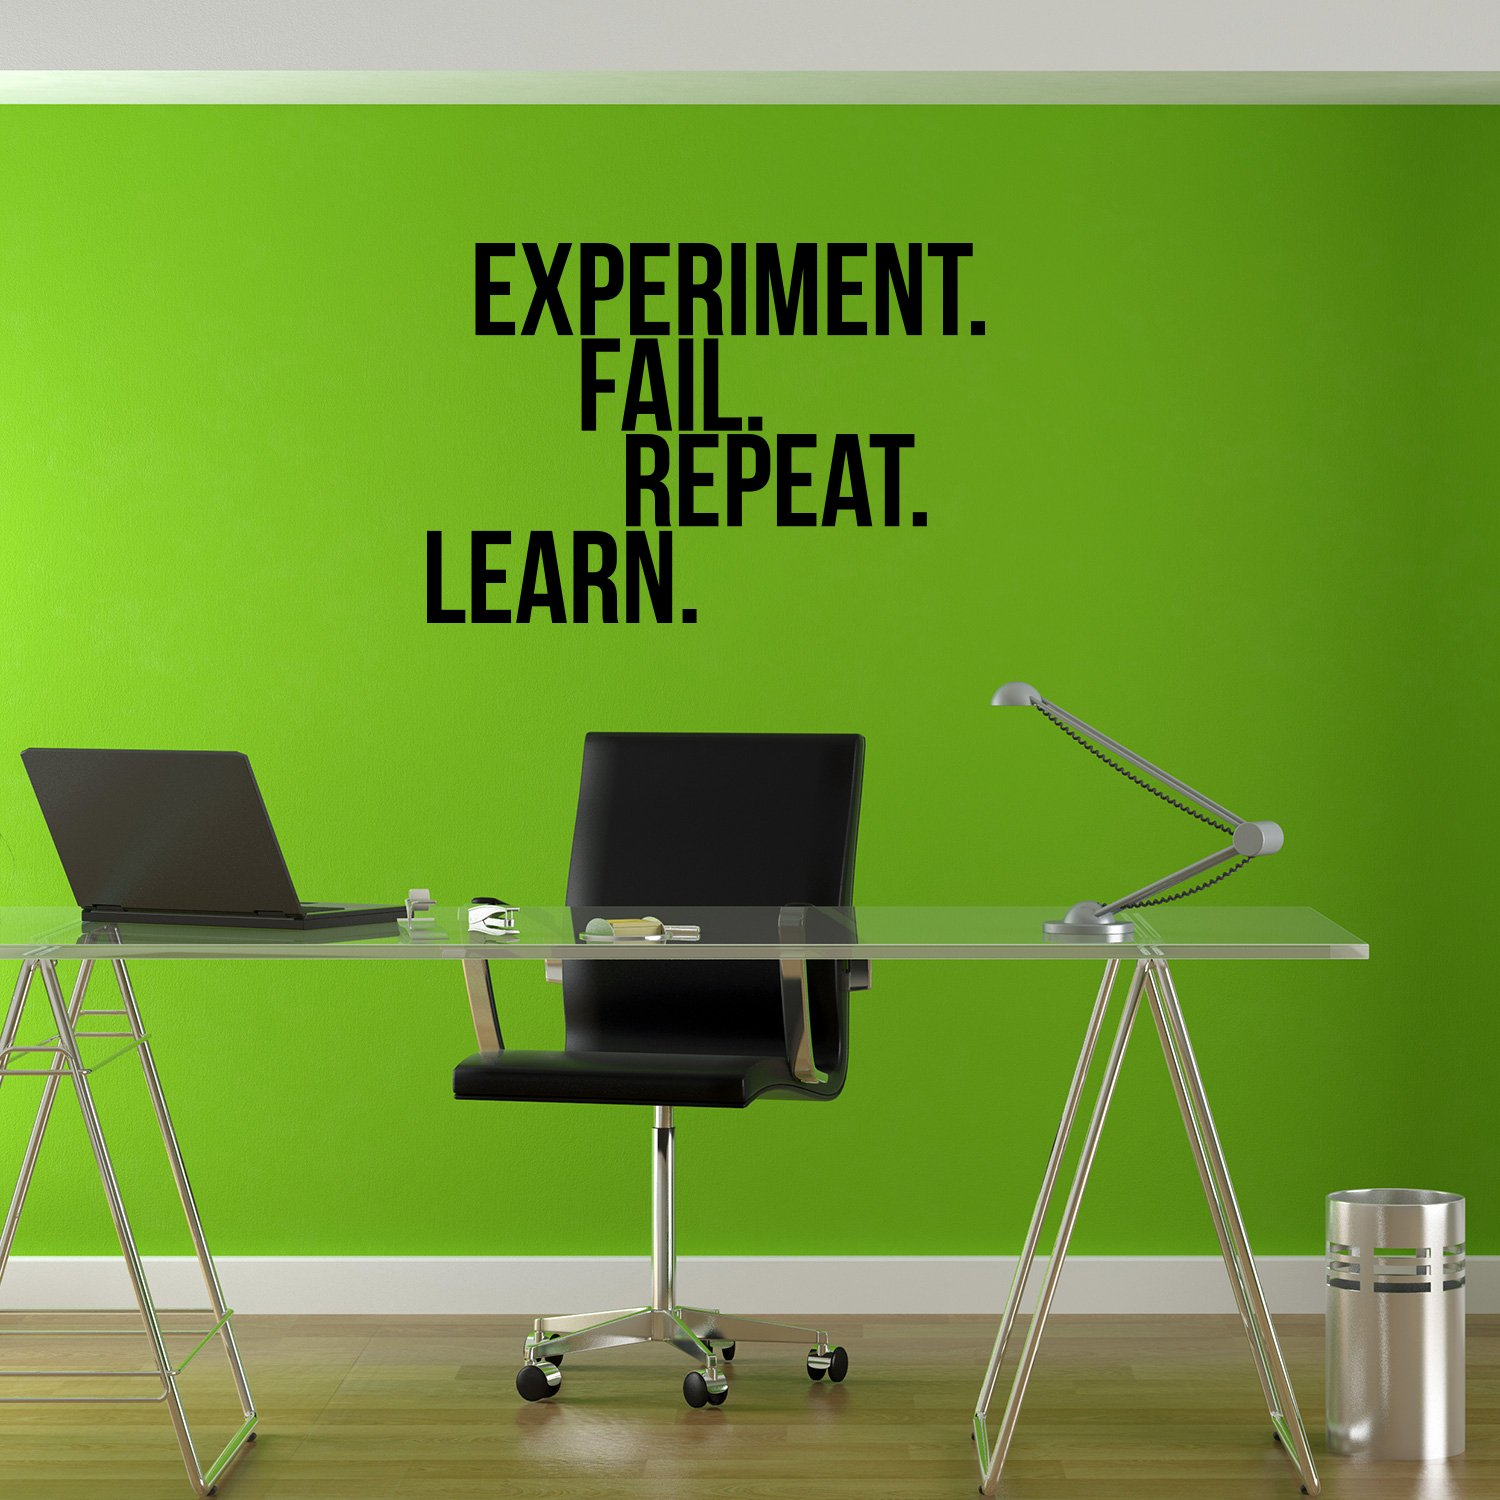 Home Work Office Wall Decor 16 x 23 Vinyl Wall Art Decal Inspirational Sayings Words Experiment Fail Repeat Learn Motivational Quote Removable Sticker Decals